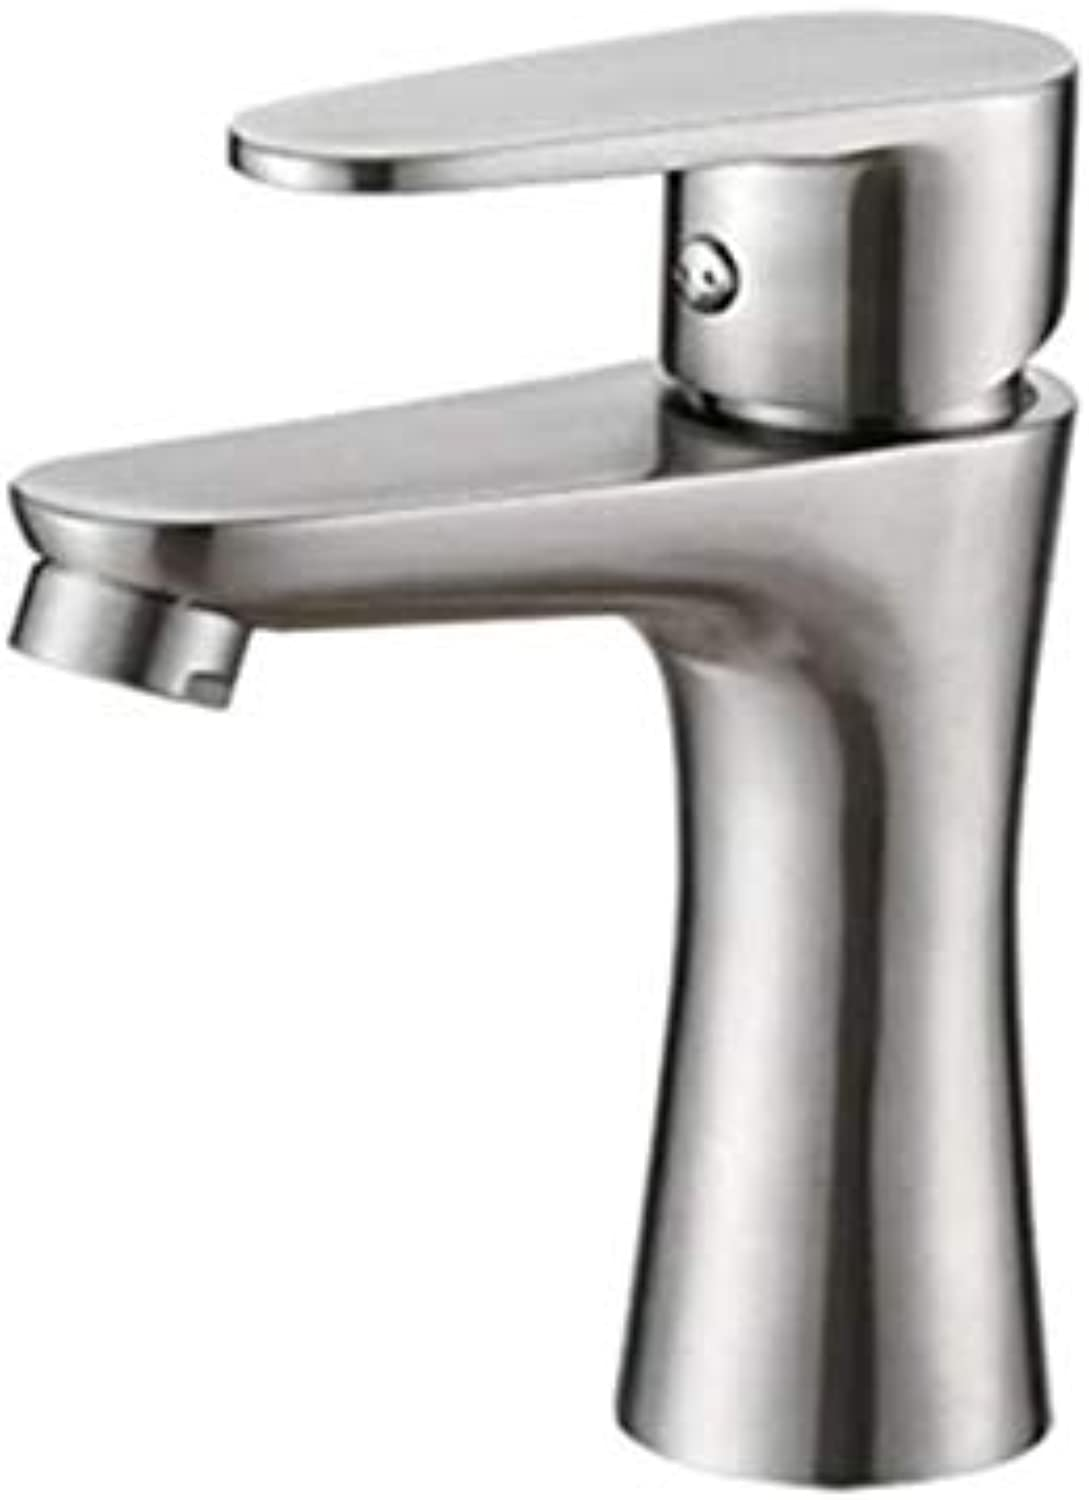 Taps Kitchen Sinkwaste Mono Spout Basinstainless Steel Basin Faucet Hot and Cold Bathroom Faucet